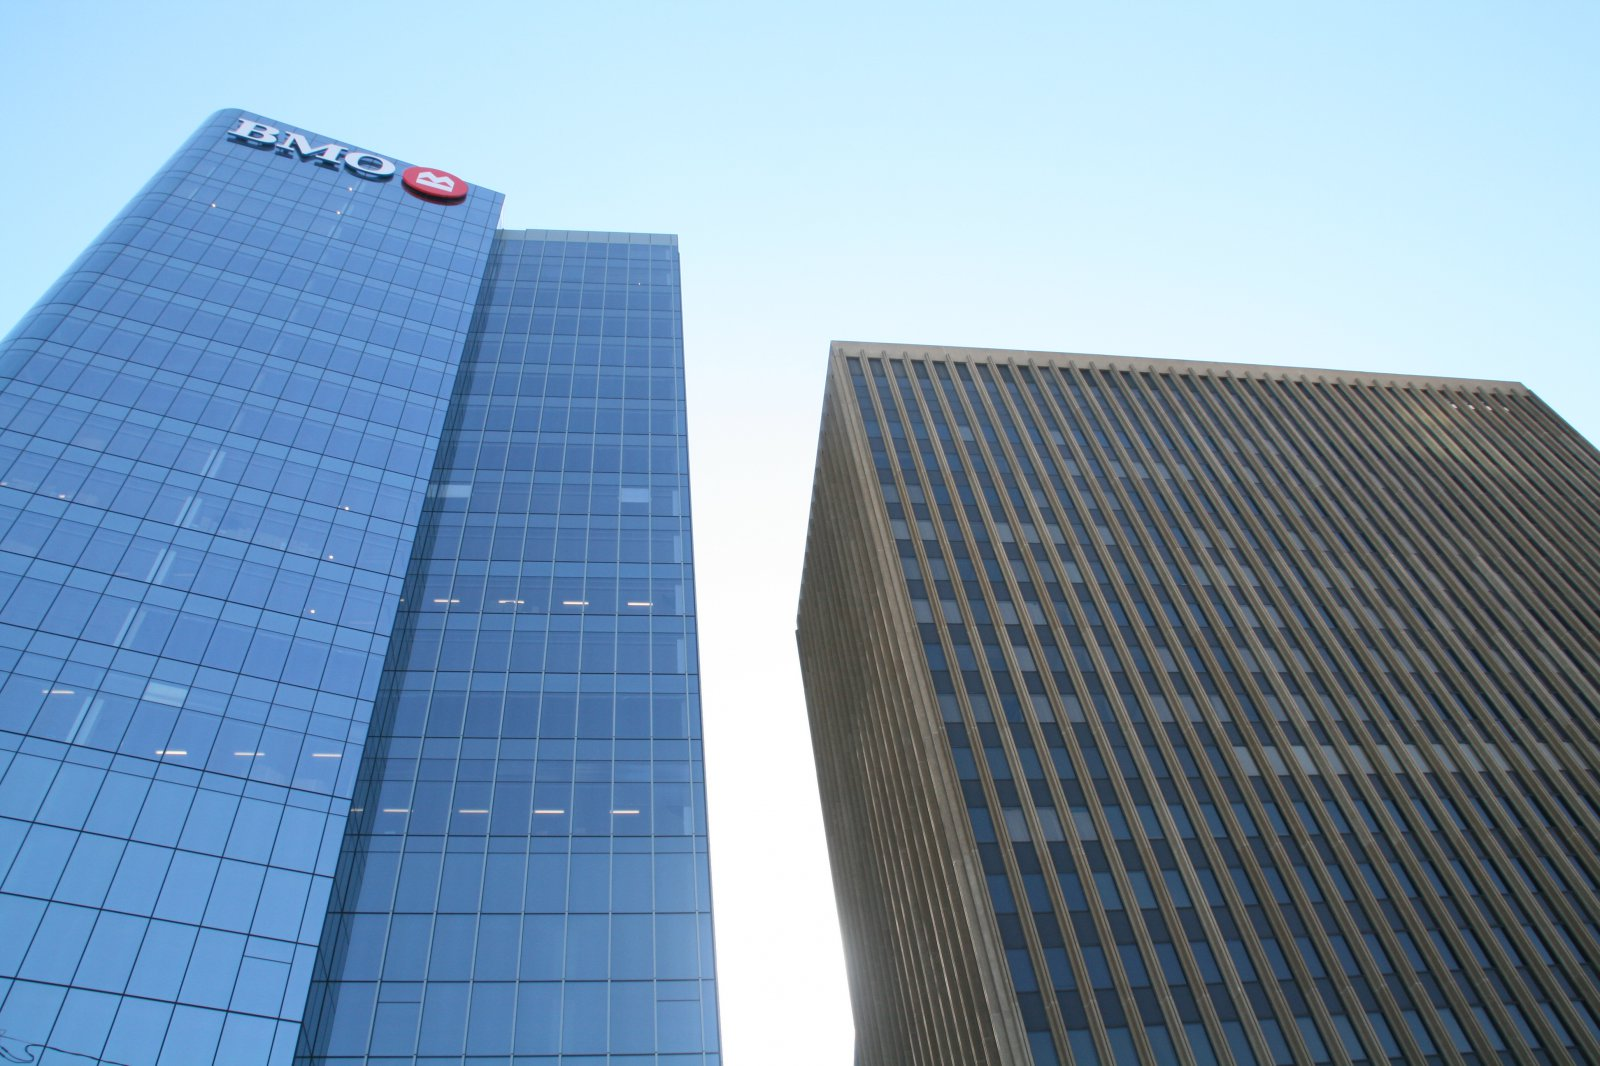 BMO Tower and 770 North